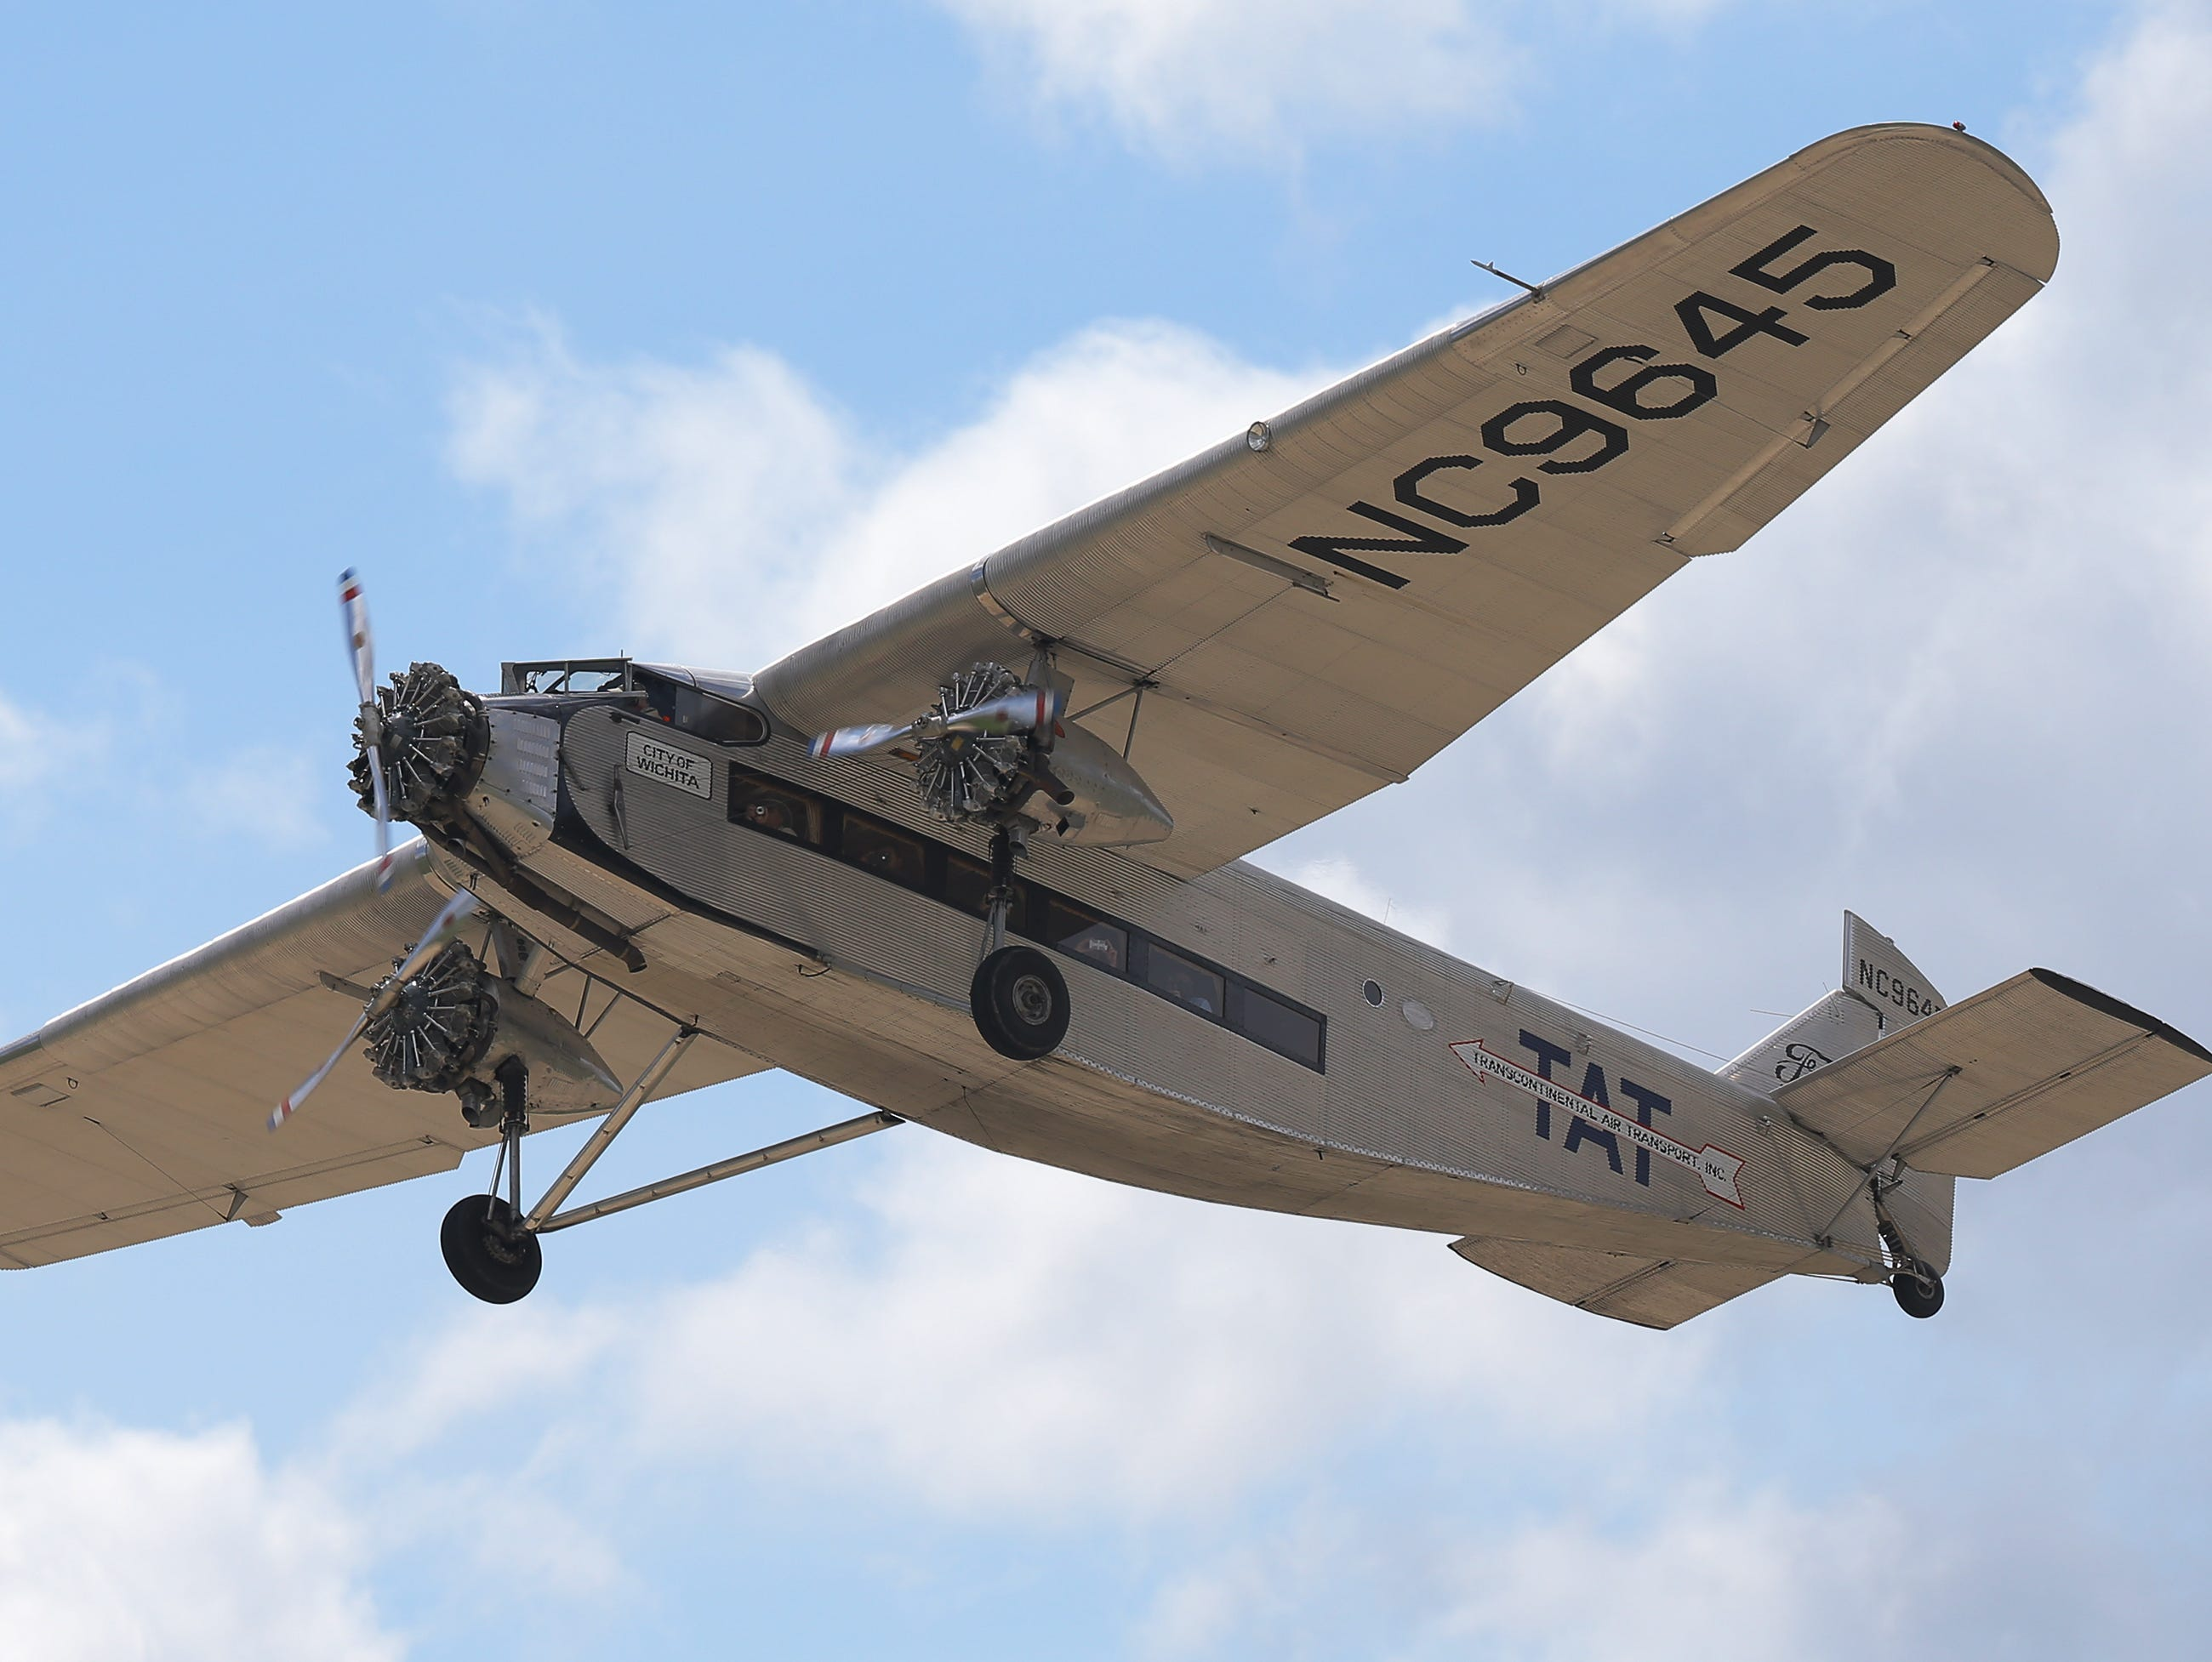 A Ford tri-motor that is giving rides takes off, Thursday, July 26, 2018, in Oshkosh, Wis.  The 66th annual Experimental Aircraft Association Fly-In Convention, AirVenture 2018 draws over 500,000 people and over 10,000 planes from more than 70 nations annually to the area.  The convention runs through July 29.Joe Sienkiewicz/USA Today NETWORK-Wisconsin